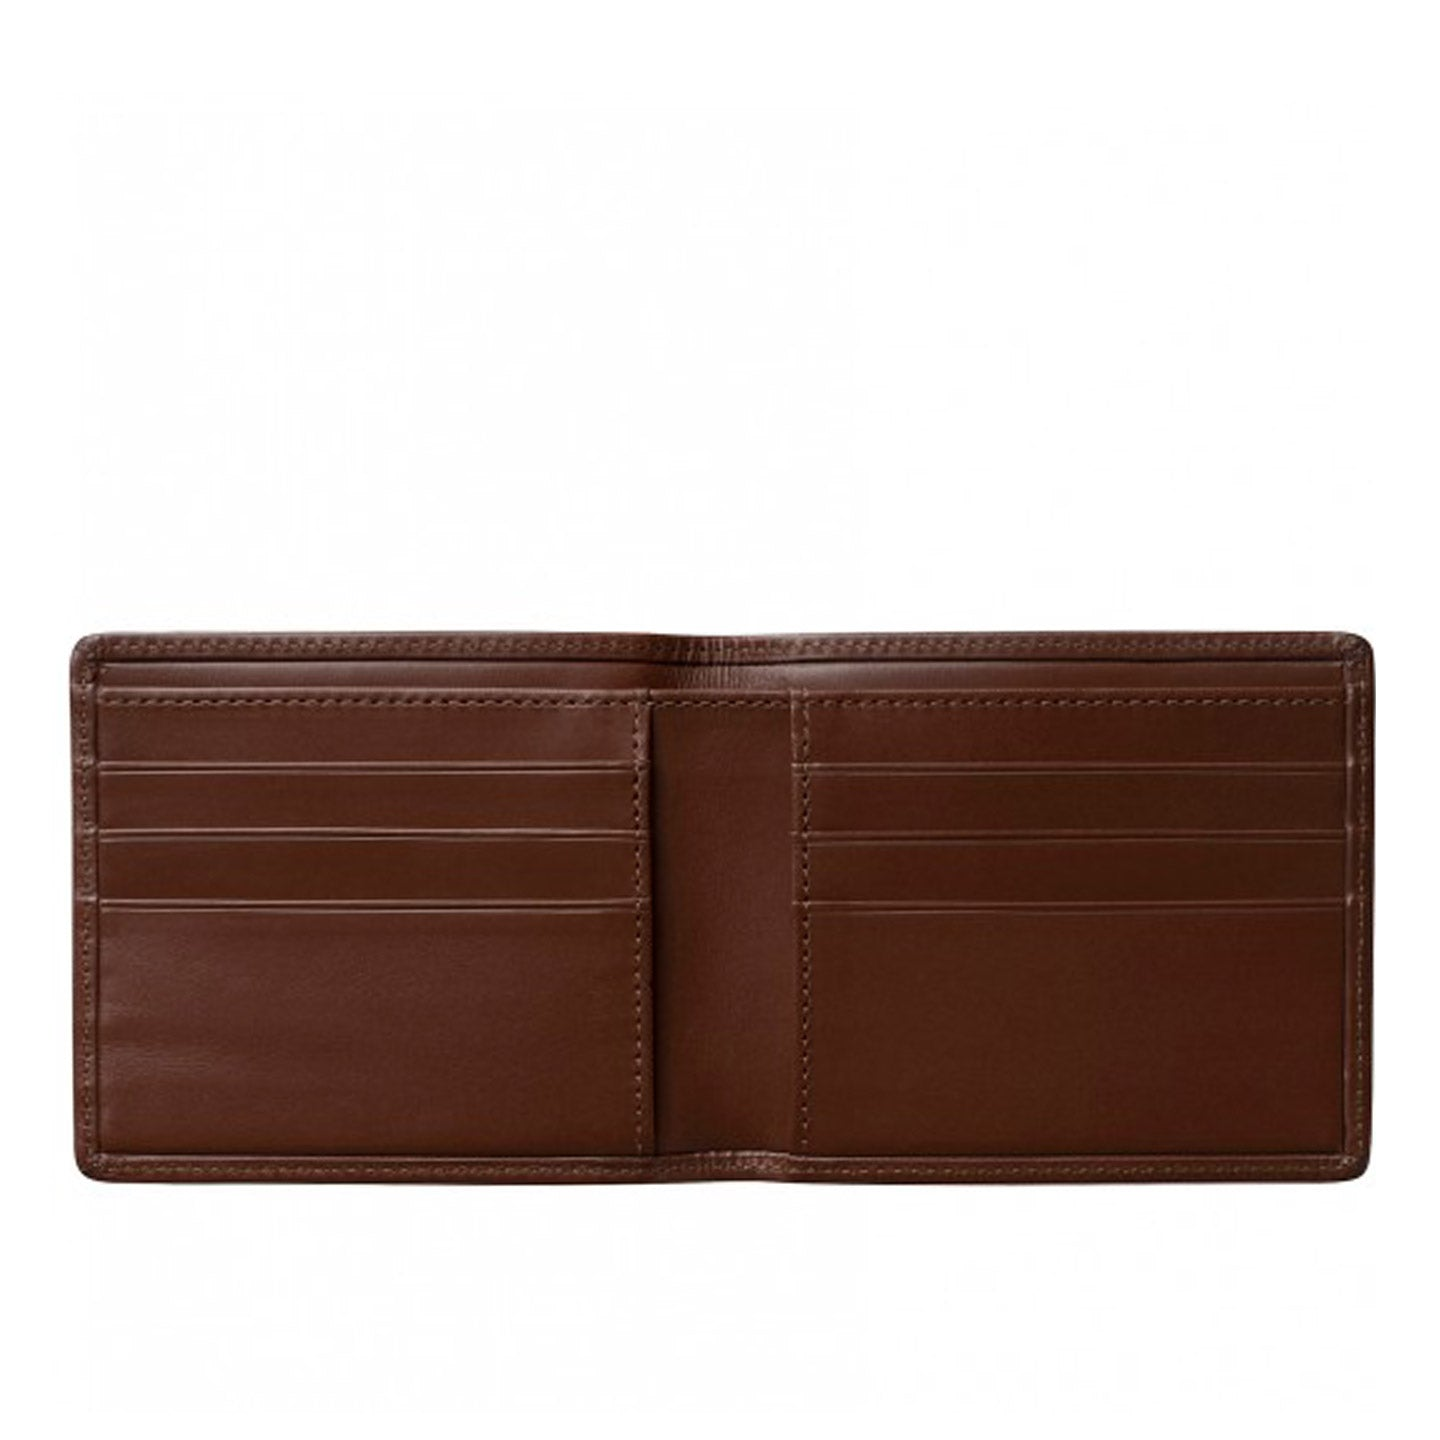 A.P.C. ALY WALLET BROWN